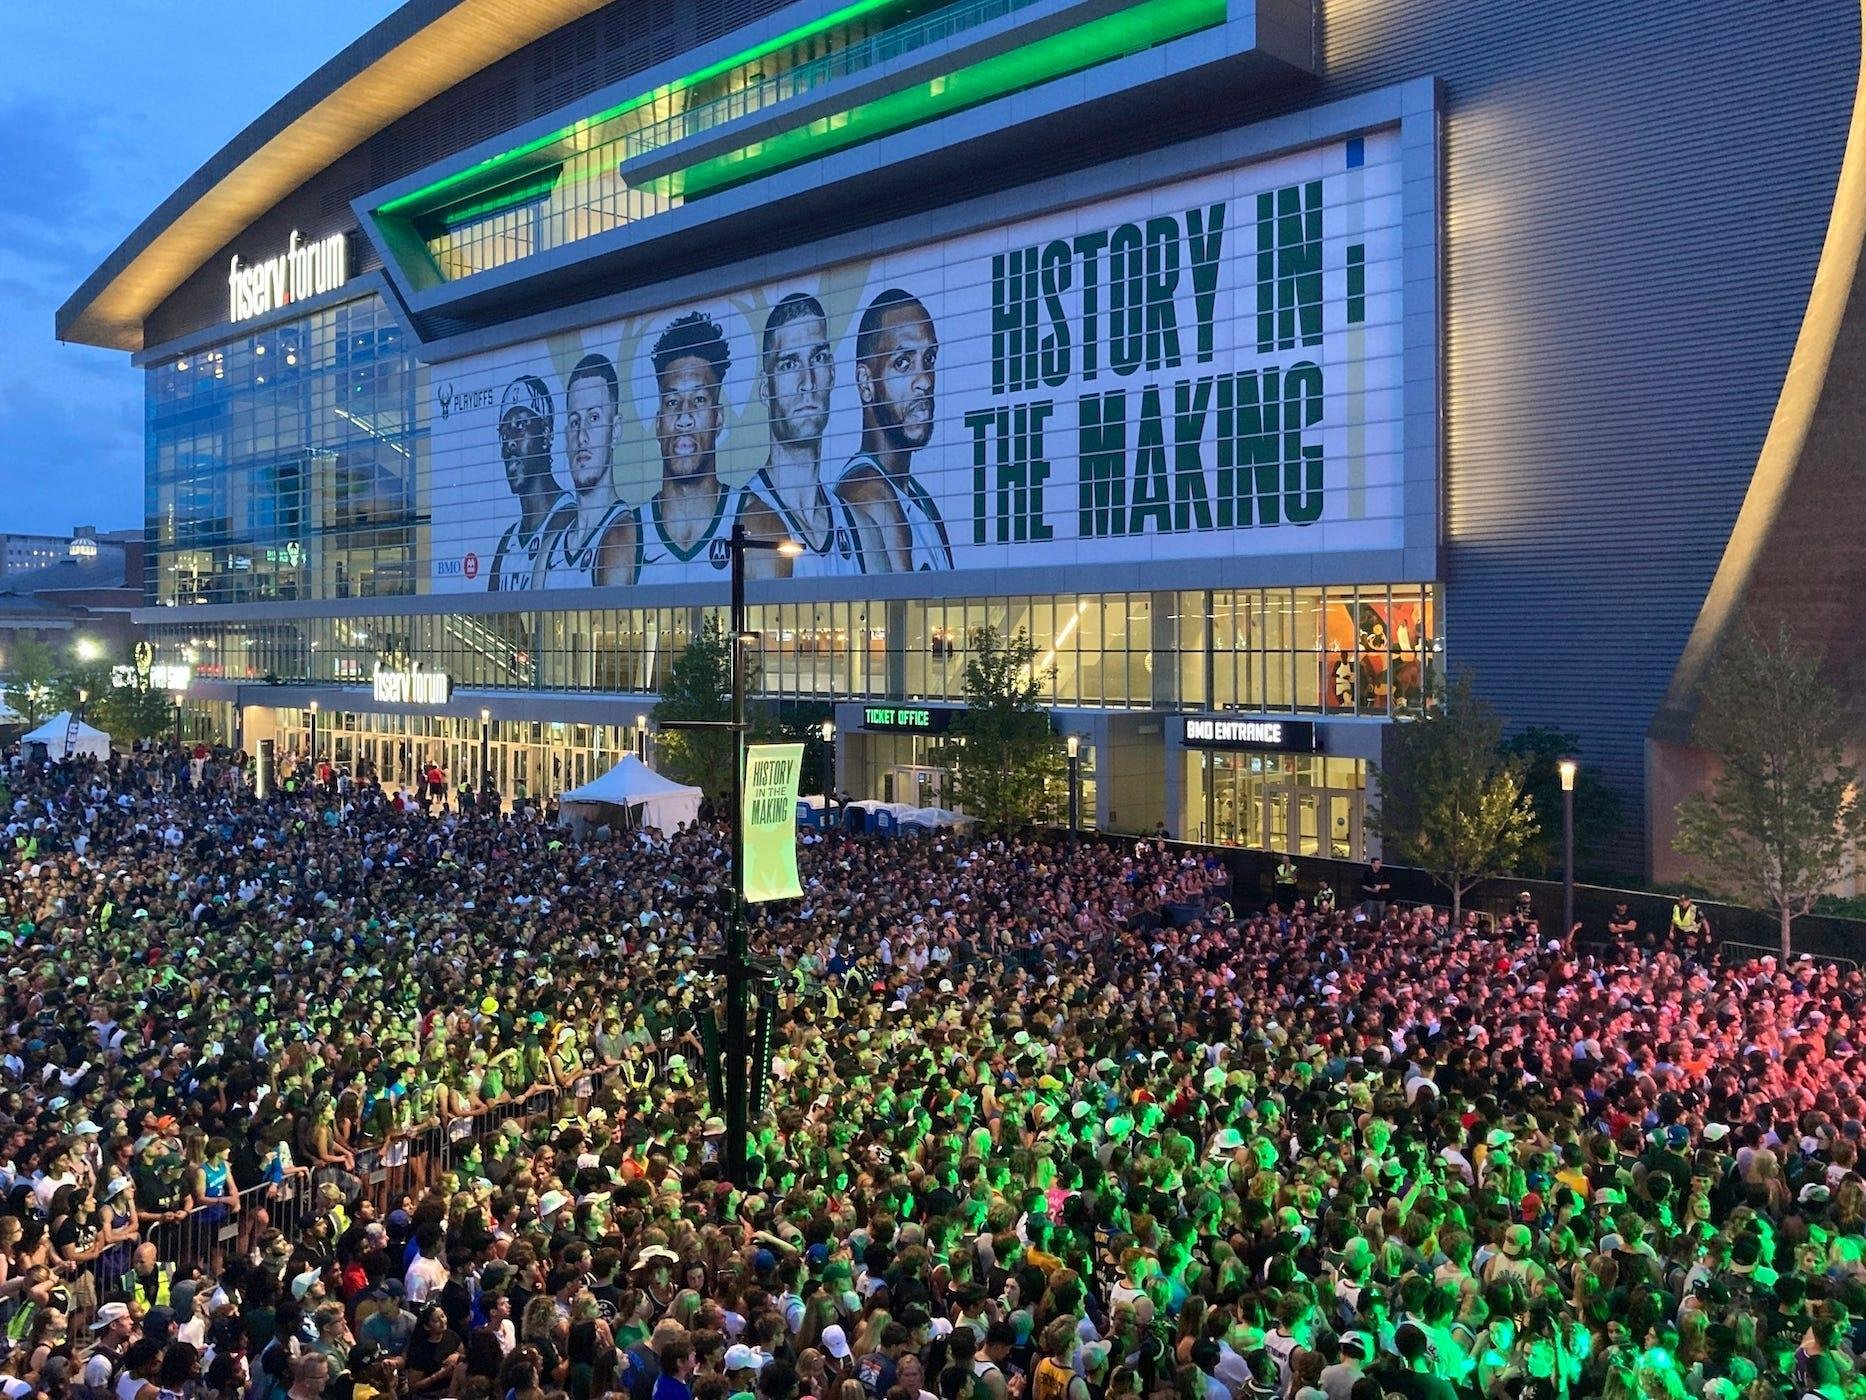 65,000 Fans Watched the Game Outside the Arena